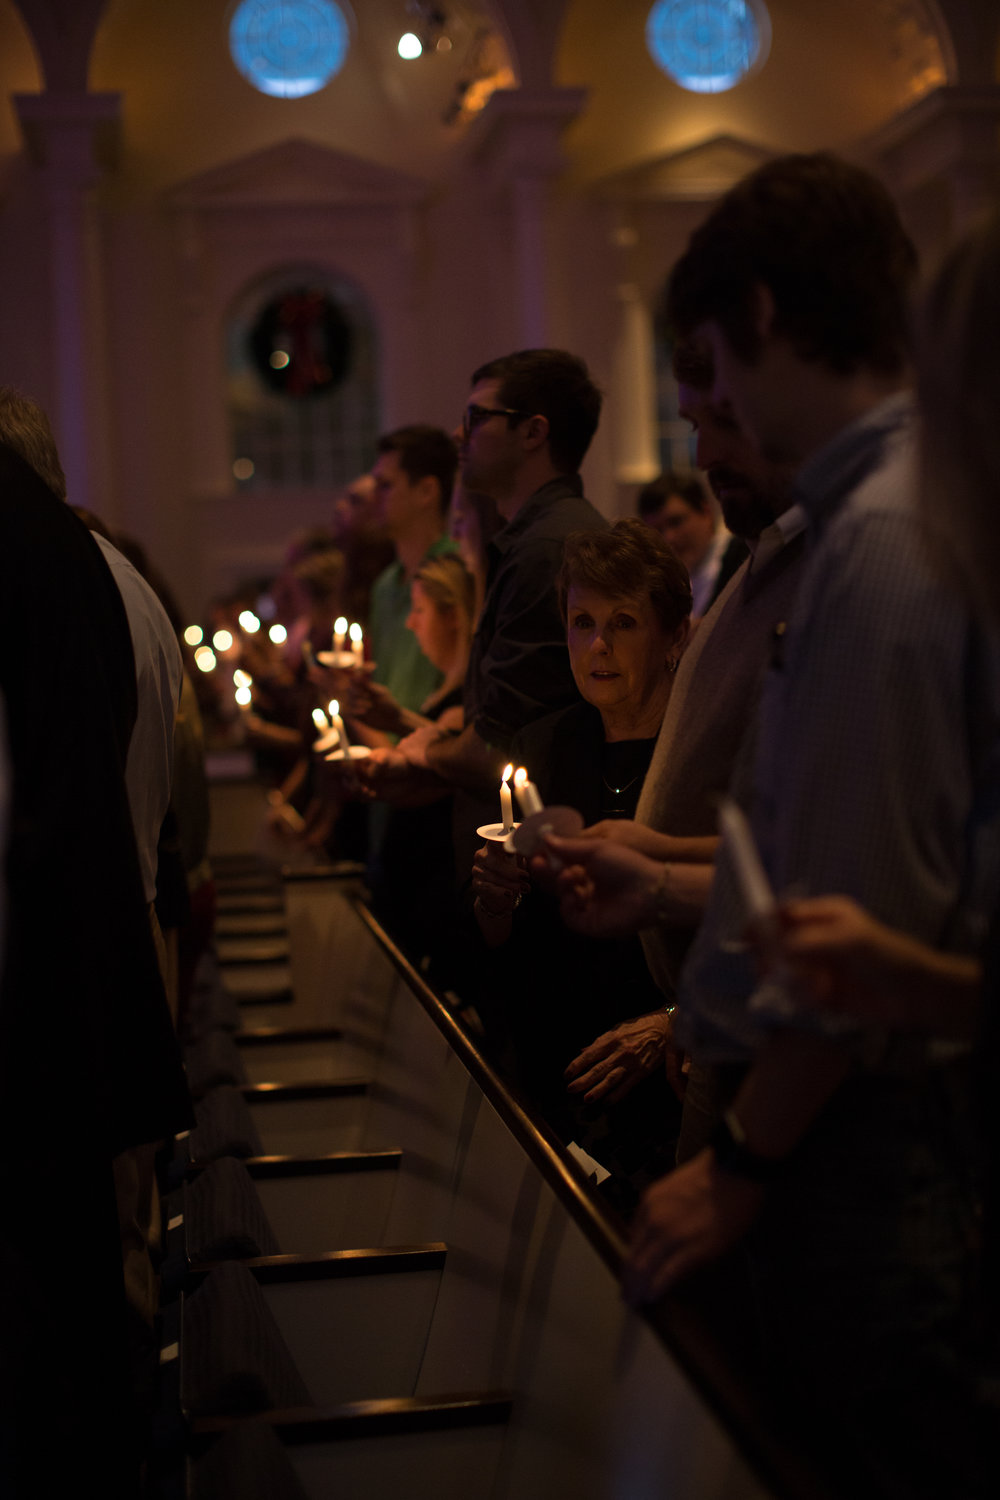 A worshipper lights the candle of the person next to her, Christmas Eve 2015.